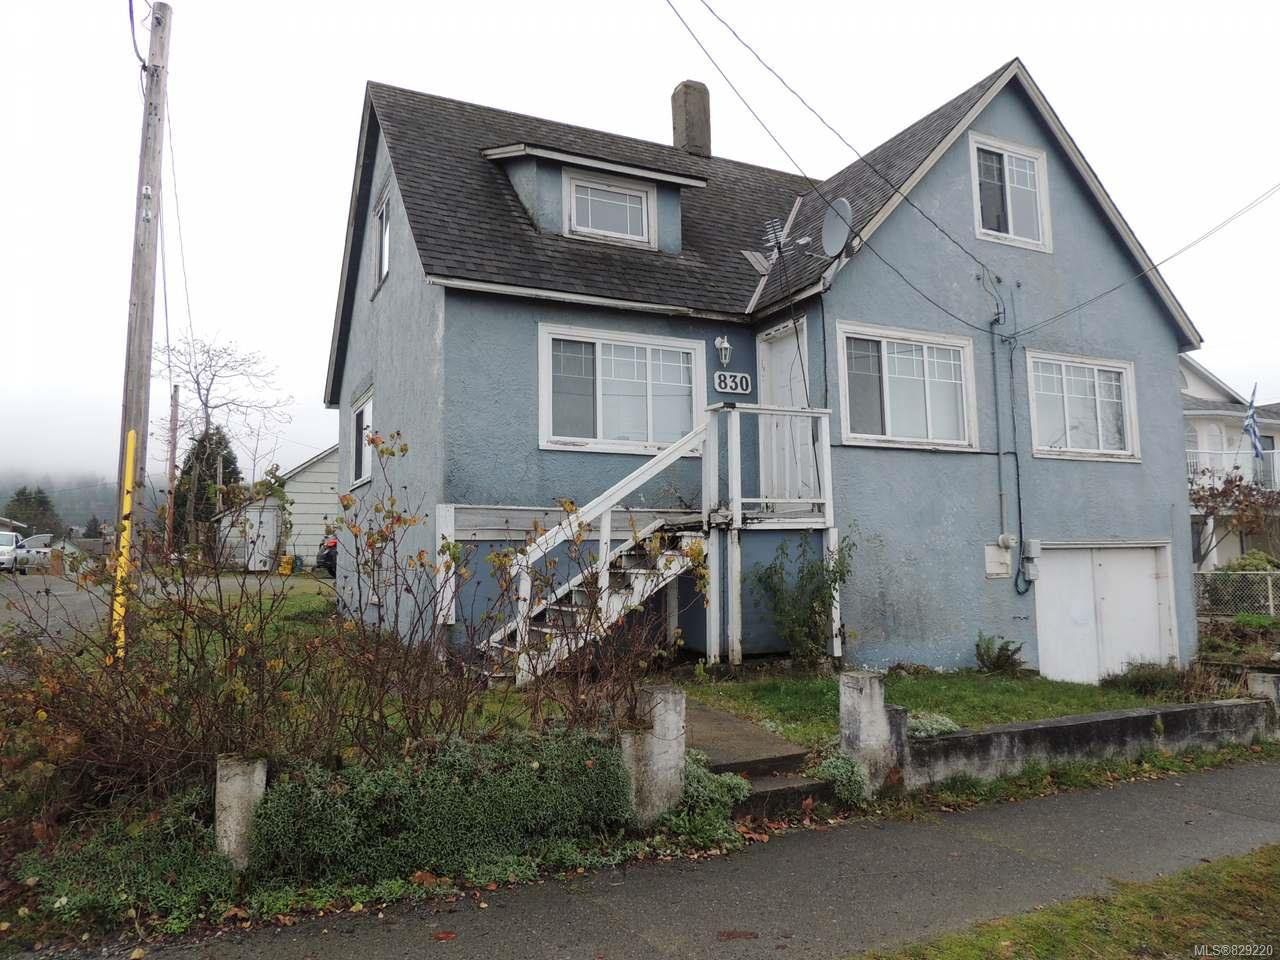 Main Photo: 830 4th Ave in LADYSMITH: Du Ladysmith Single Family Detached for sale (Duncan)  : MLS®# 829220